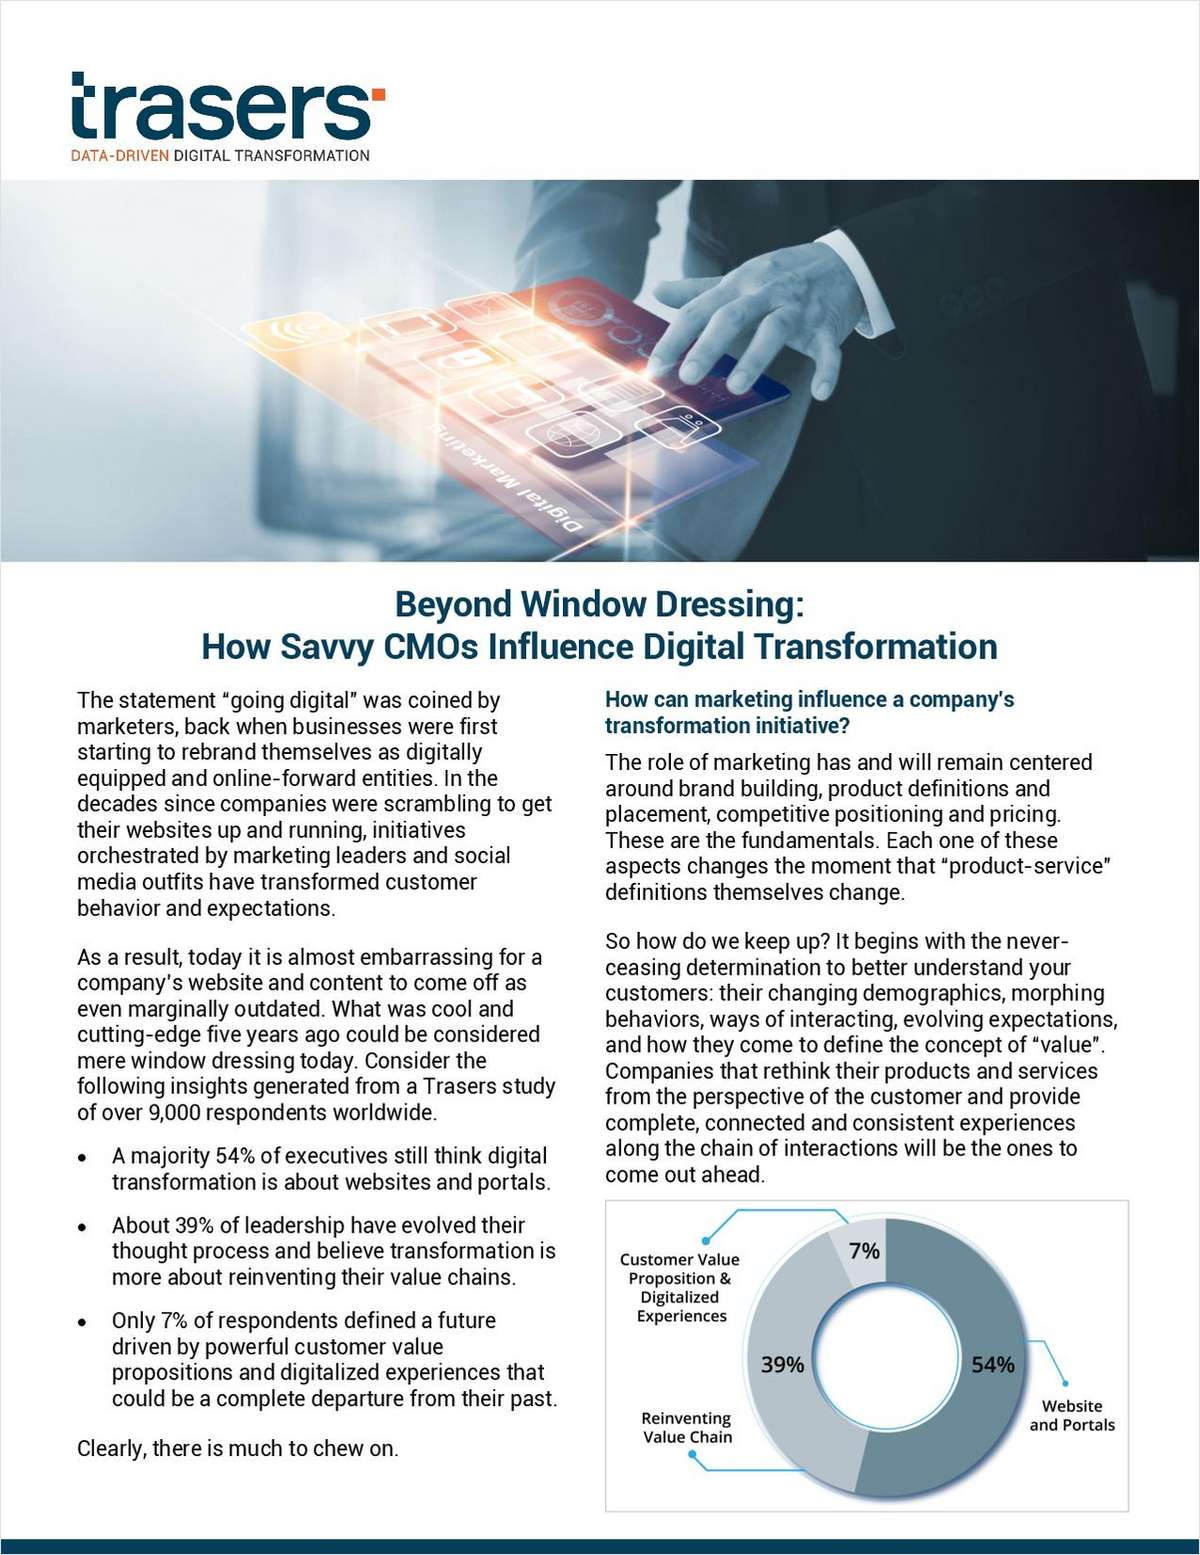 Going Beyond Window Dressing: How Smart CMOs Really Affect Digital Transformations